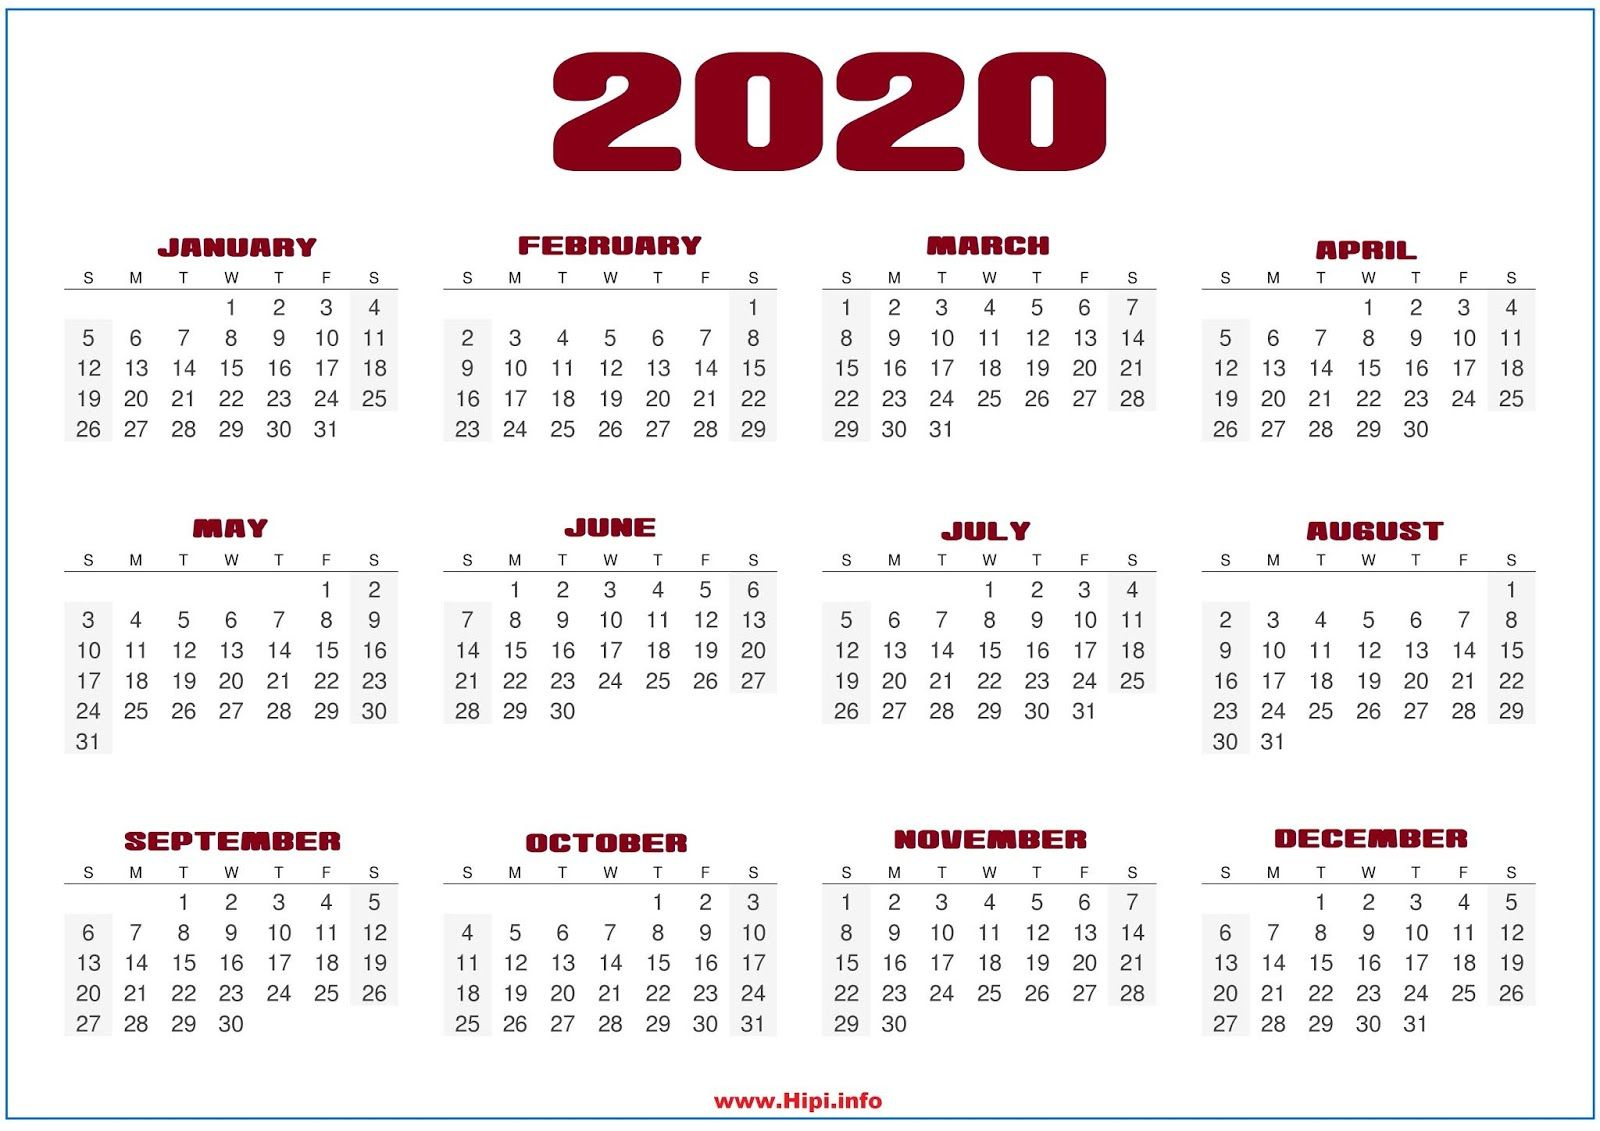 2020 Calendar Wallpapers   Top 2020 Calendar Backgrounds 1600x1131